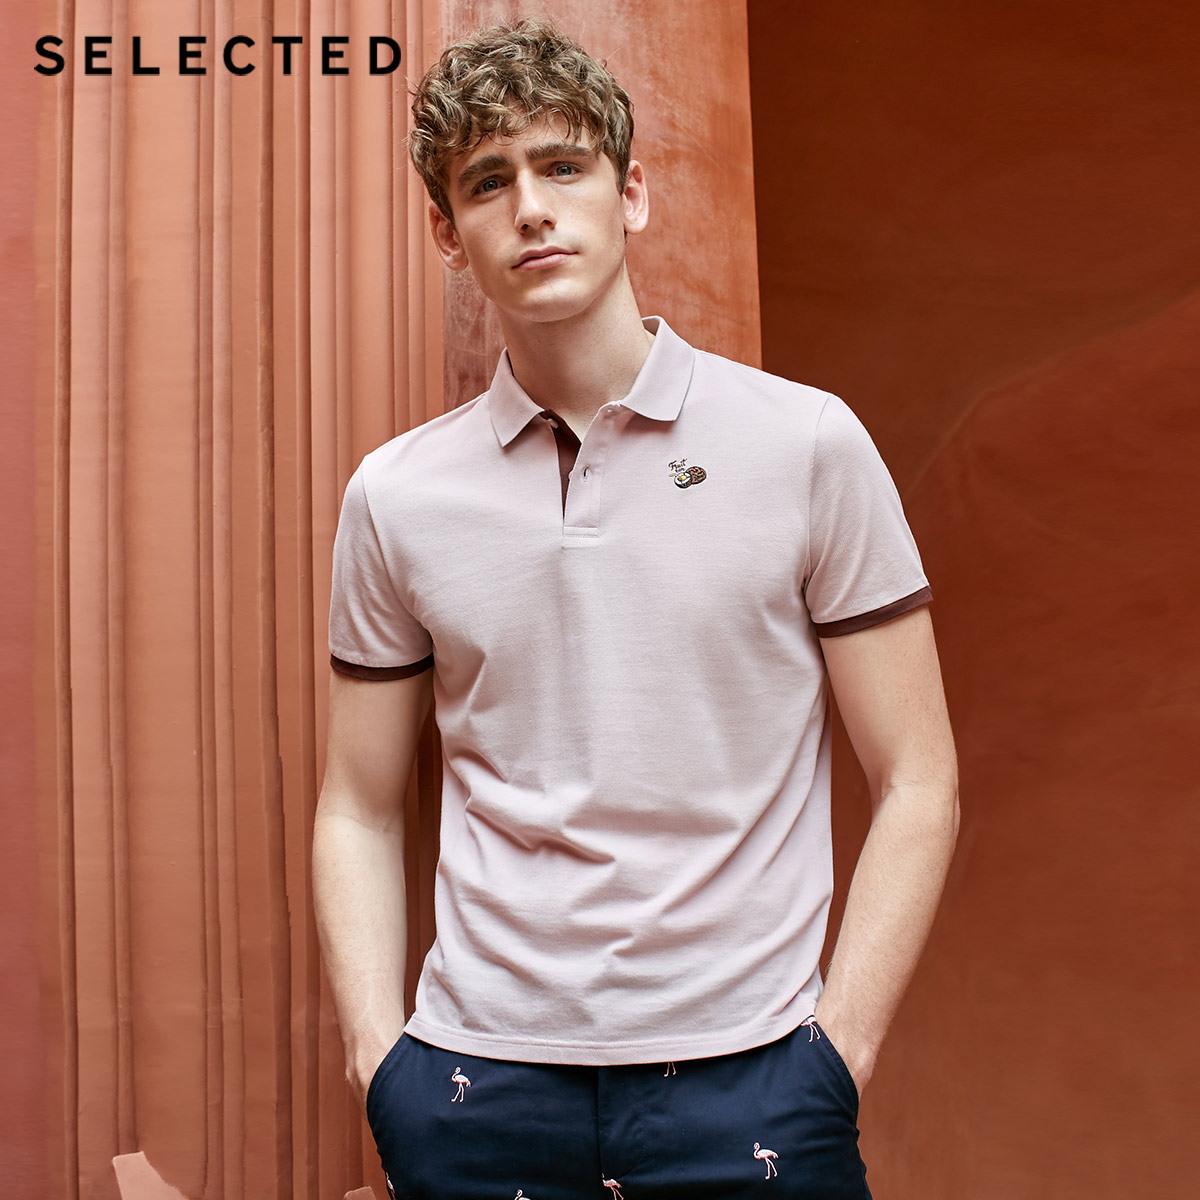 SELECTED Men's Embroidered Turn-down Collar Short-sleeved Polo Shirt S 419206510